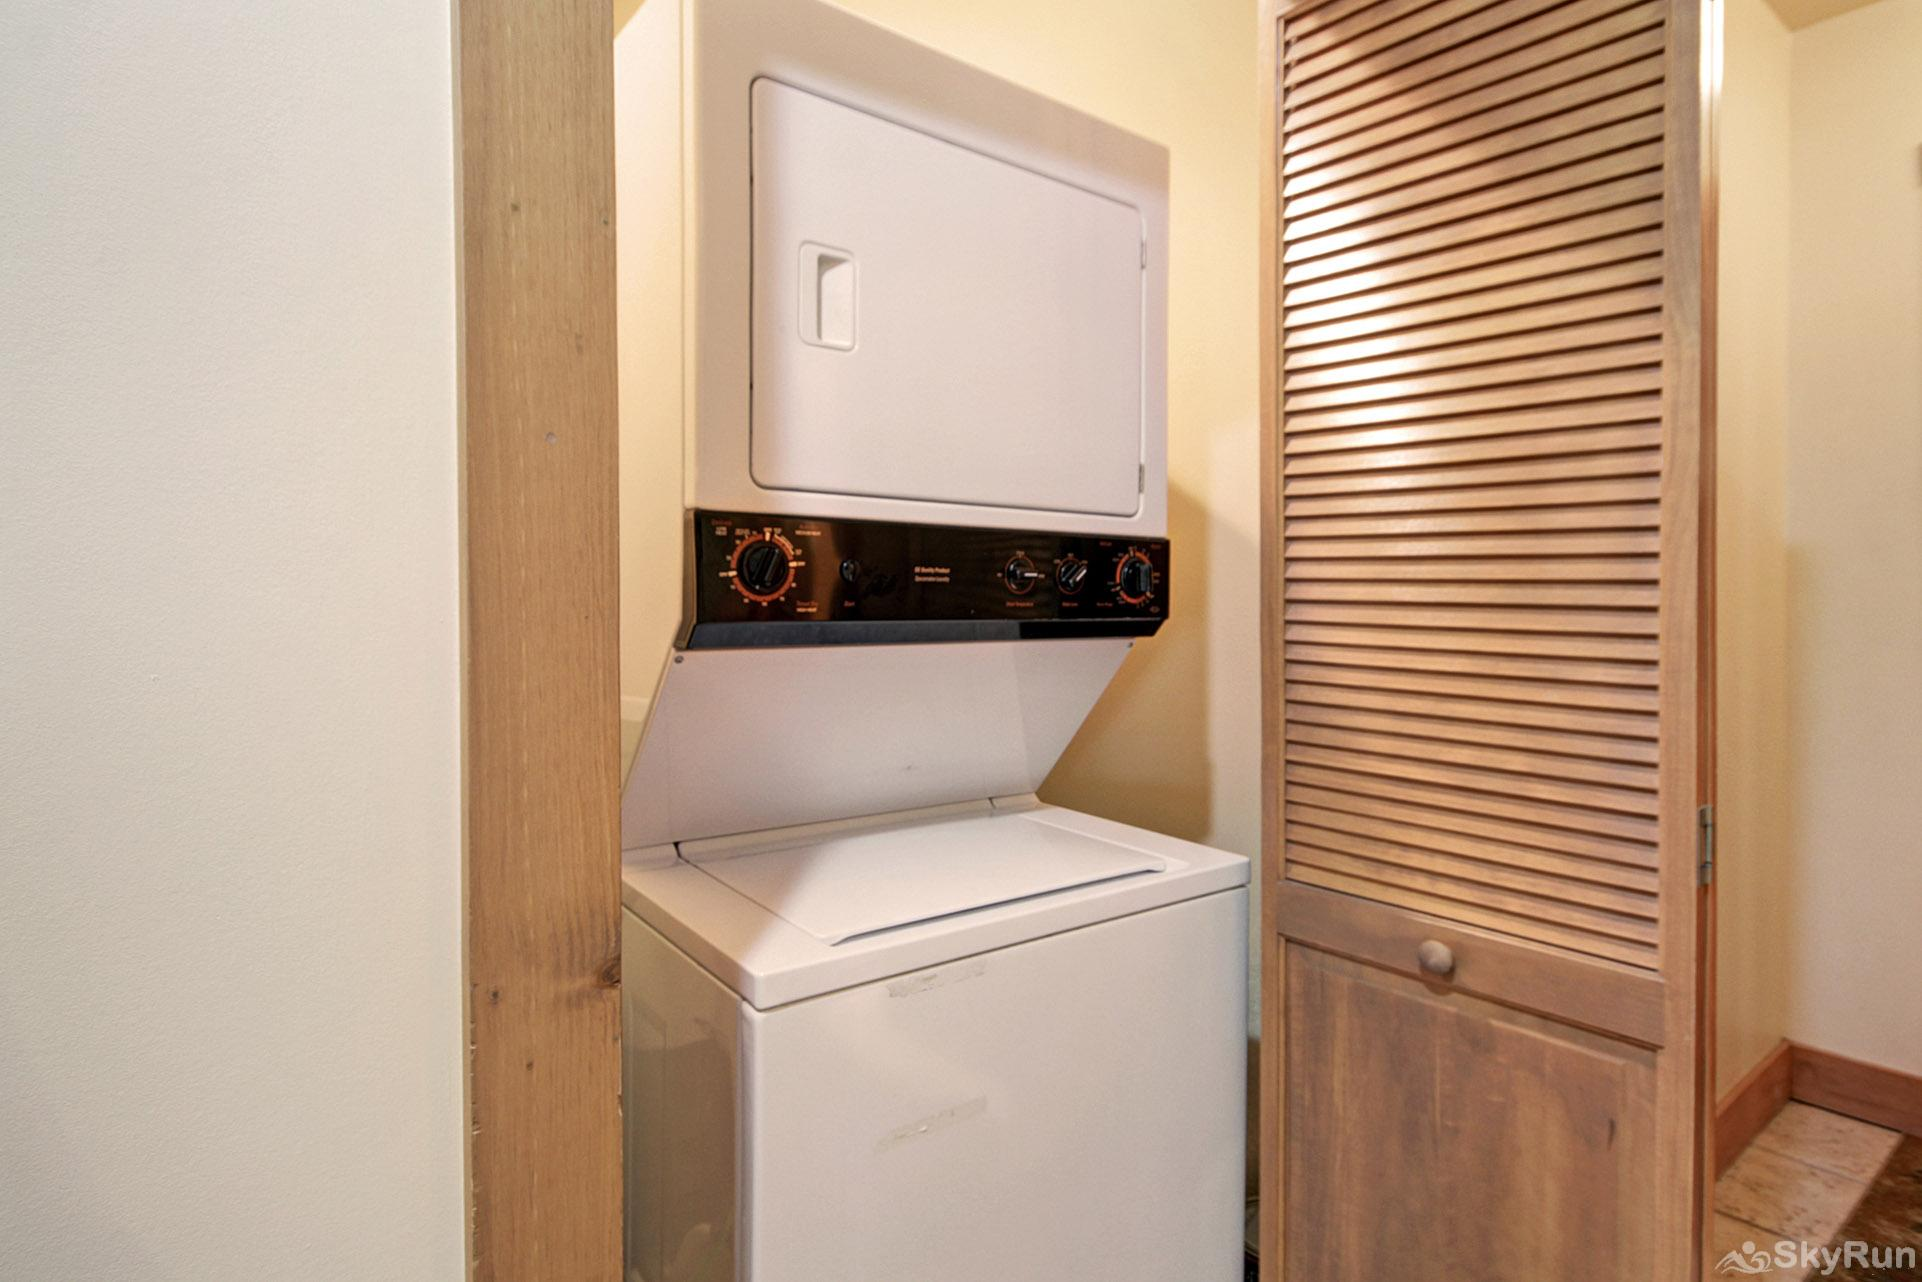 8577 Expedition Station In-Unit Washer and Dryer